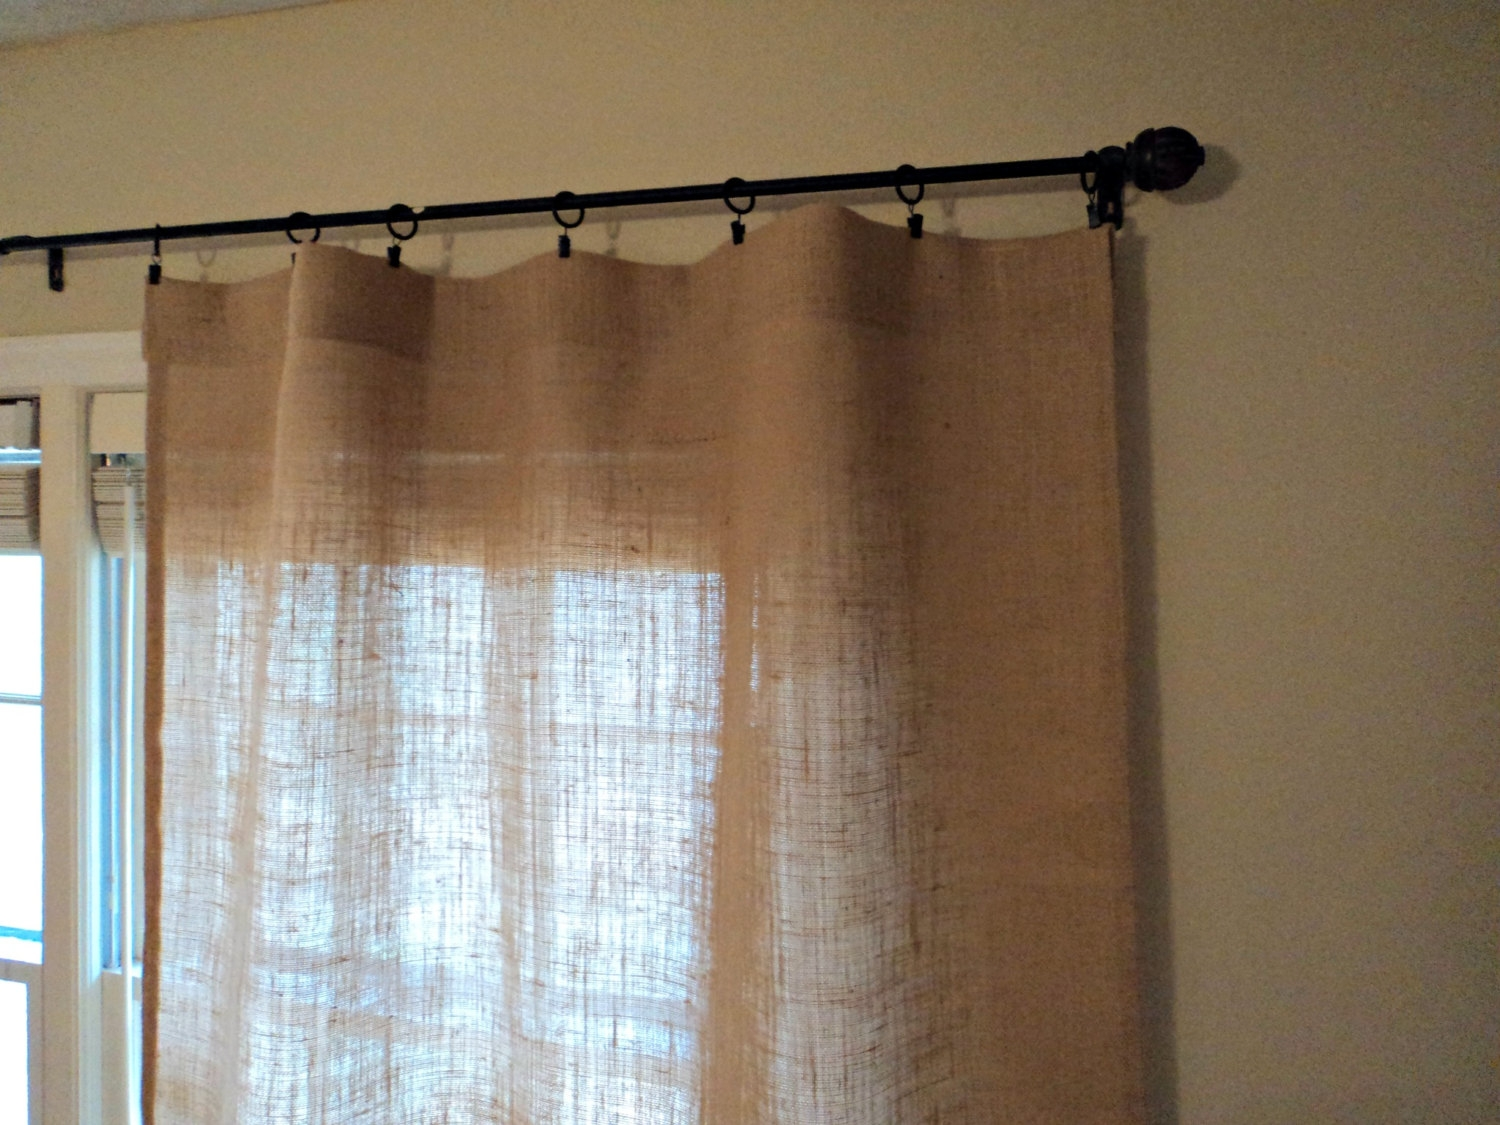 No Odor Burlap Curtains Hemmed Curtains Select Your Length Intended For Burlap Curtains (Image 20 of 25)